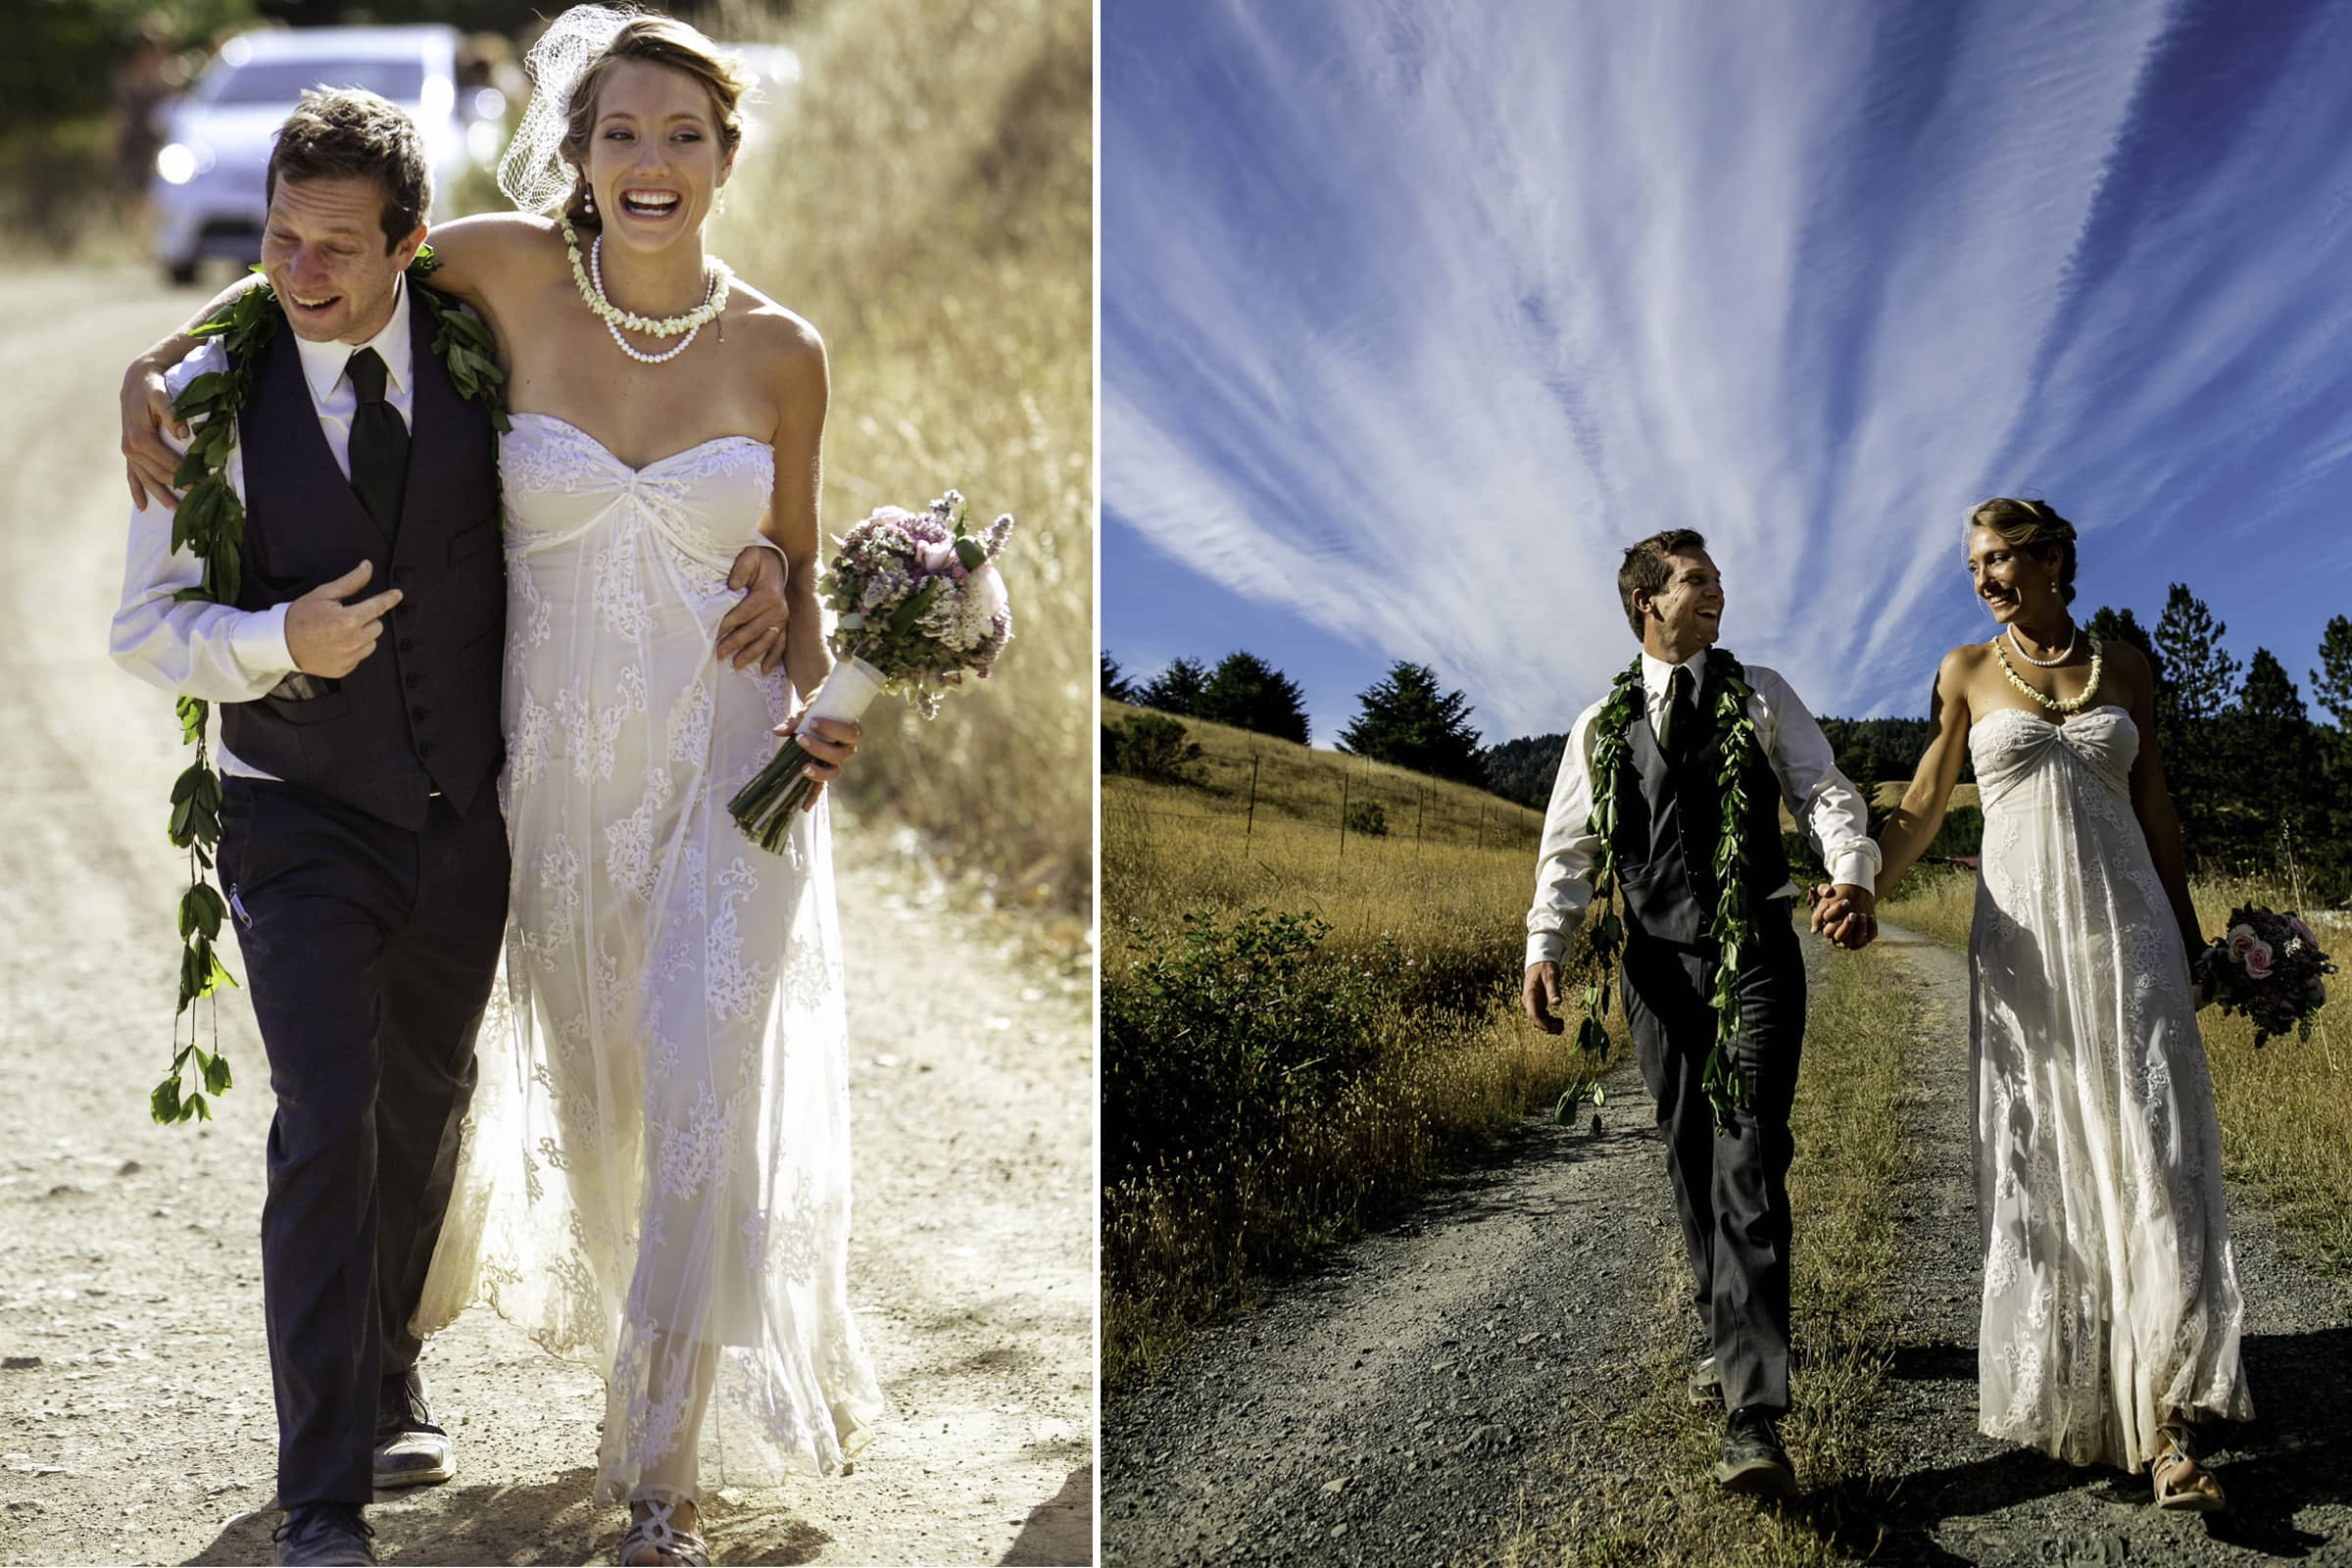 A very happy bride and groom walking together toward their Humboldt California wedding reception at Beginnings Briceland